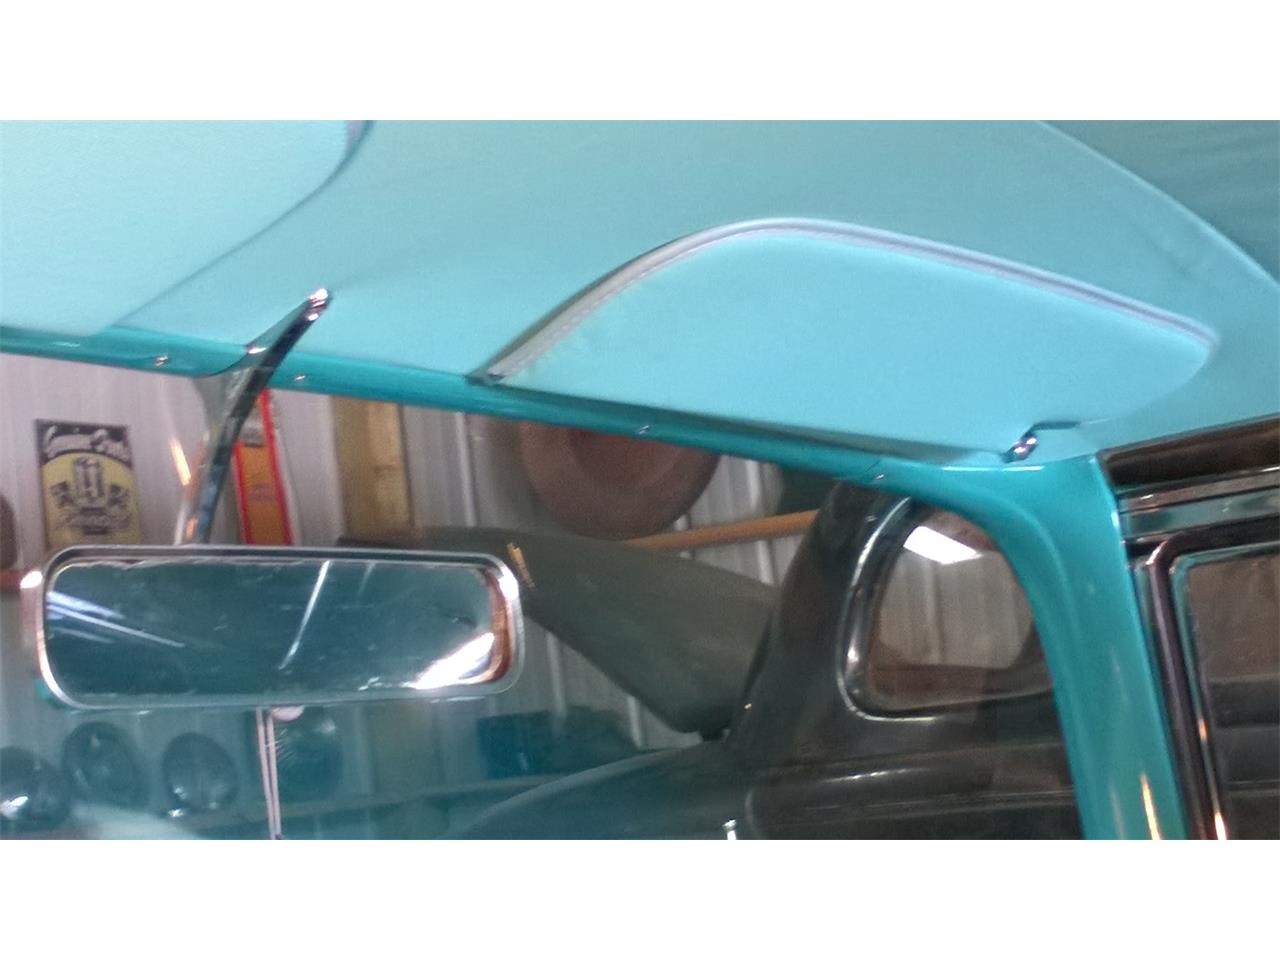 Large Picture of '57 Chevrolet Bel Air located in Illinois - $55,500.00 Offered by a Private Seller - MXZH